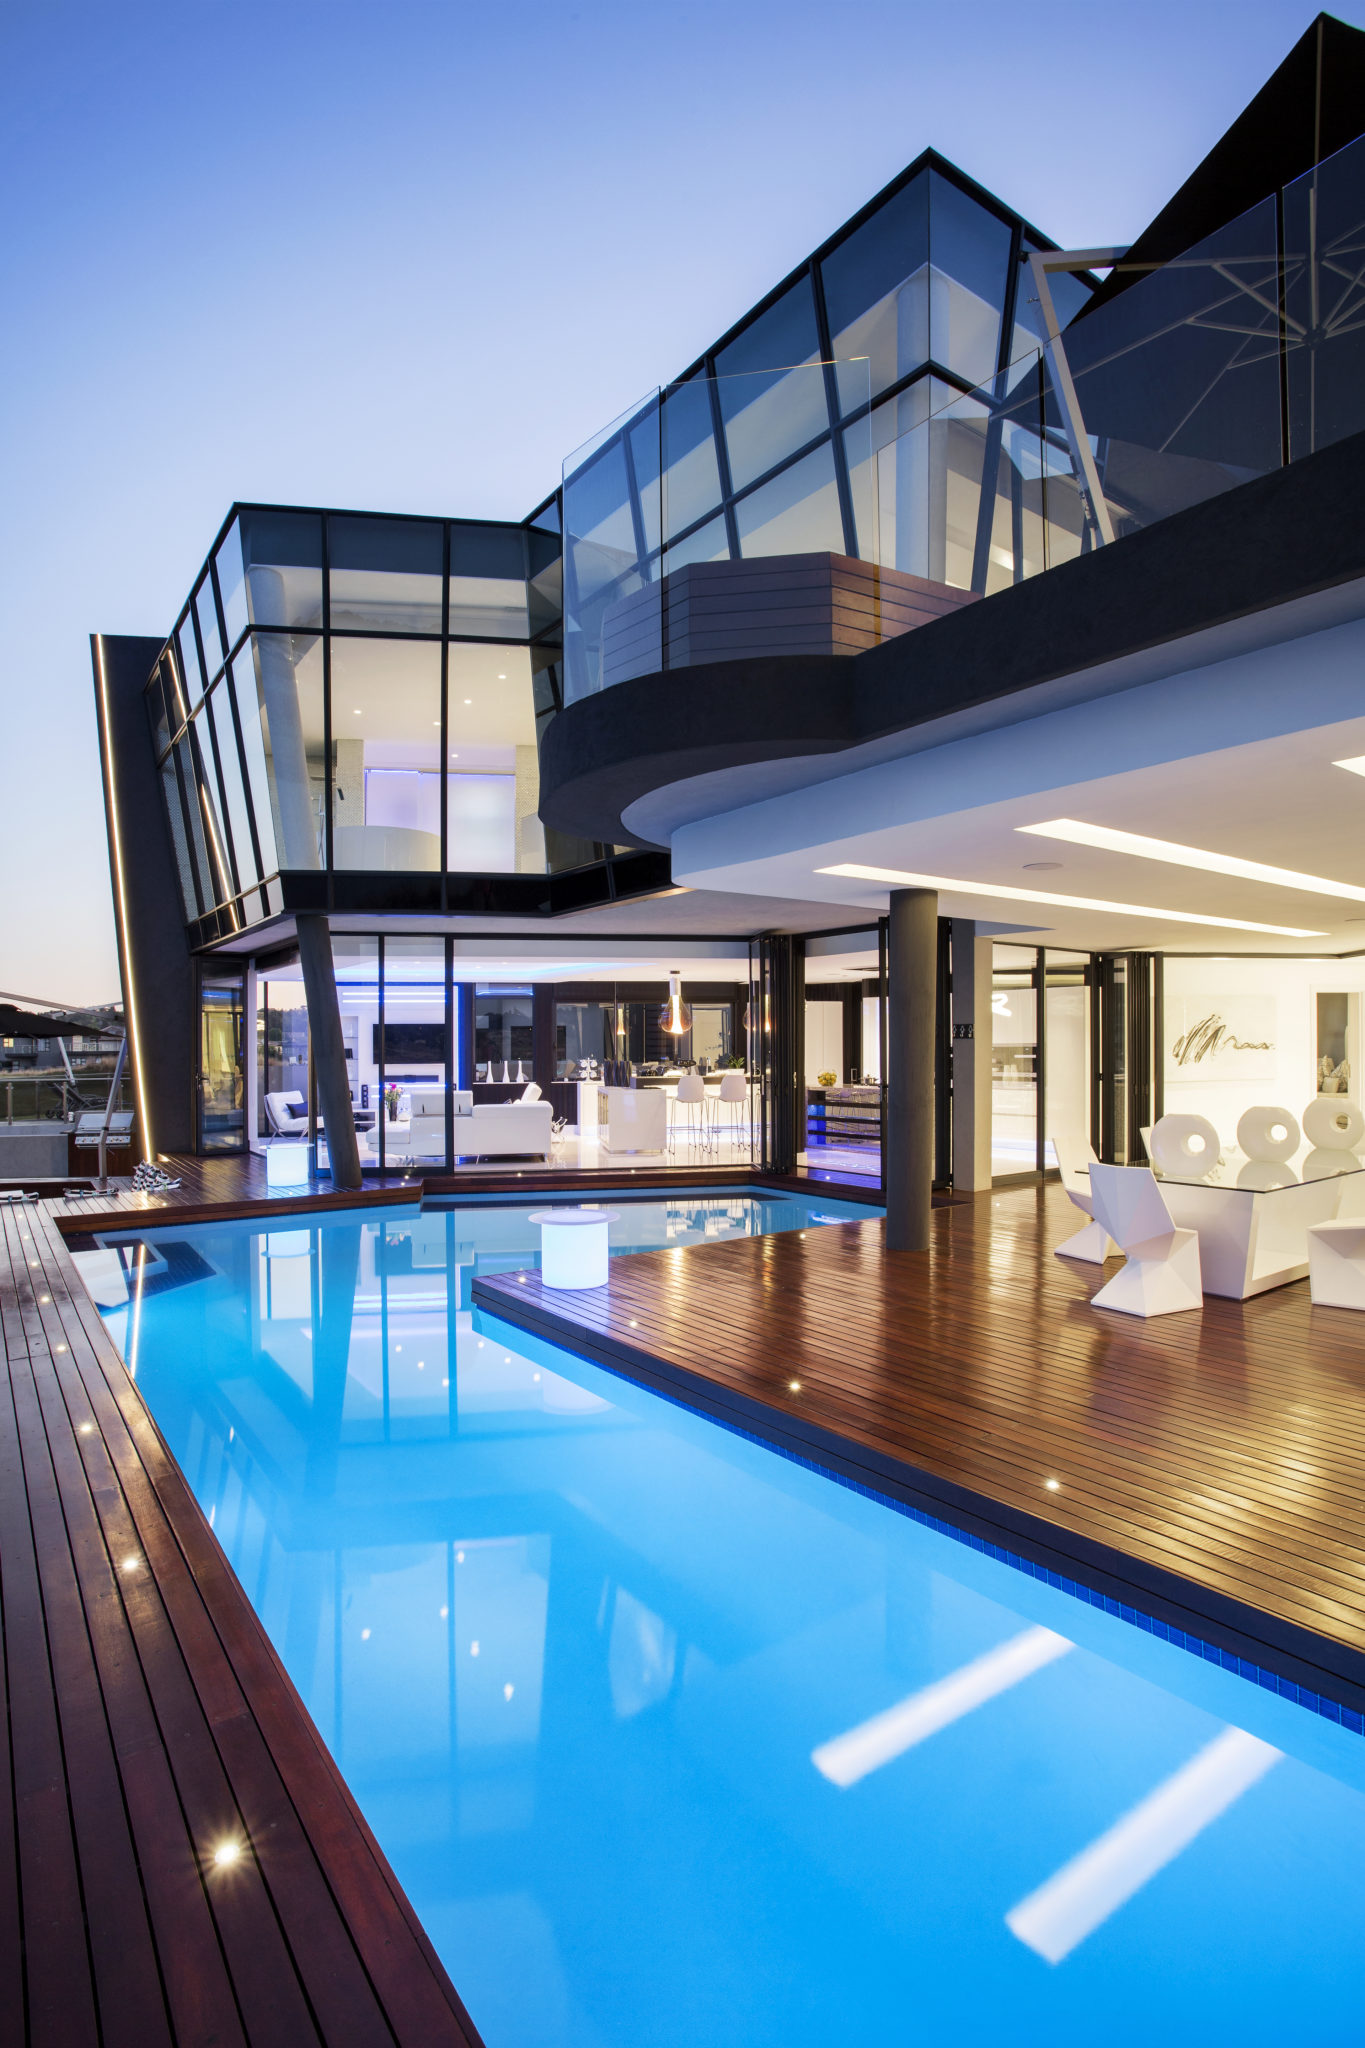 Build your dream house by using the best residential architects in South Africa